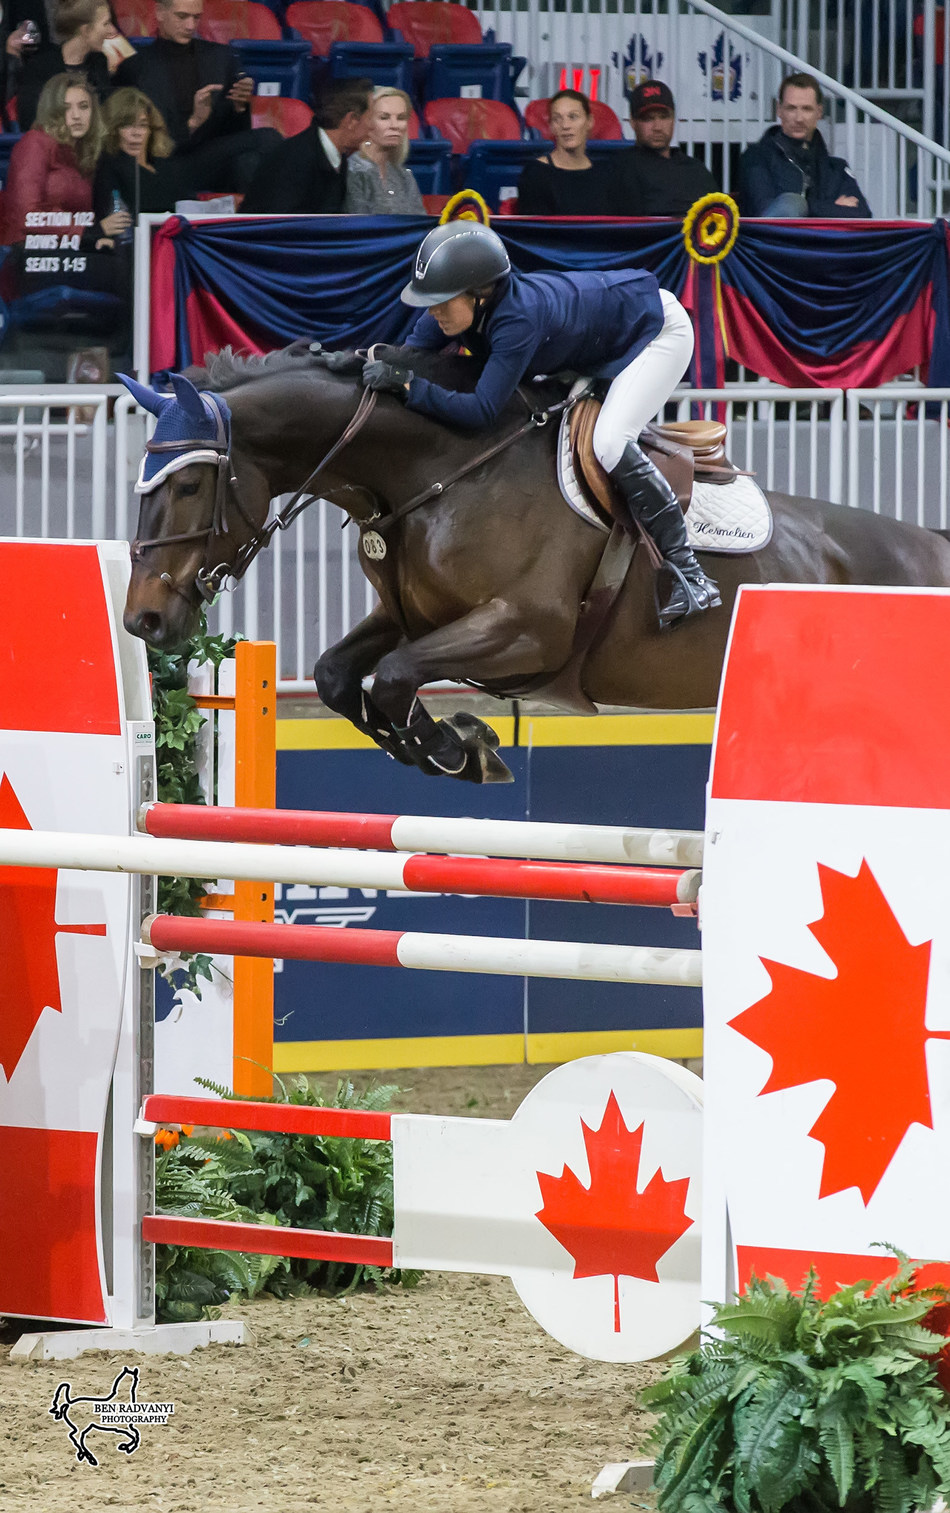 Ali Ramsay of Victoria, BC, placed second in the opening round of the $125,000 Canadian Show Jumping Championship riding Hermelien VD Hooghoeve on Friday, November 3, at the Royal Horse Show. Photo by Ben Radvanyi Photography (CNW Group/Royal Agricultural Winter Fair)